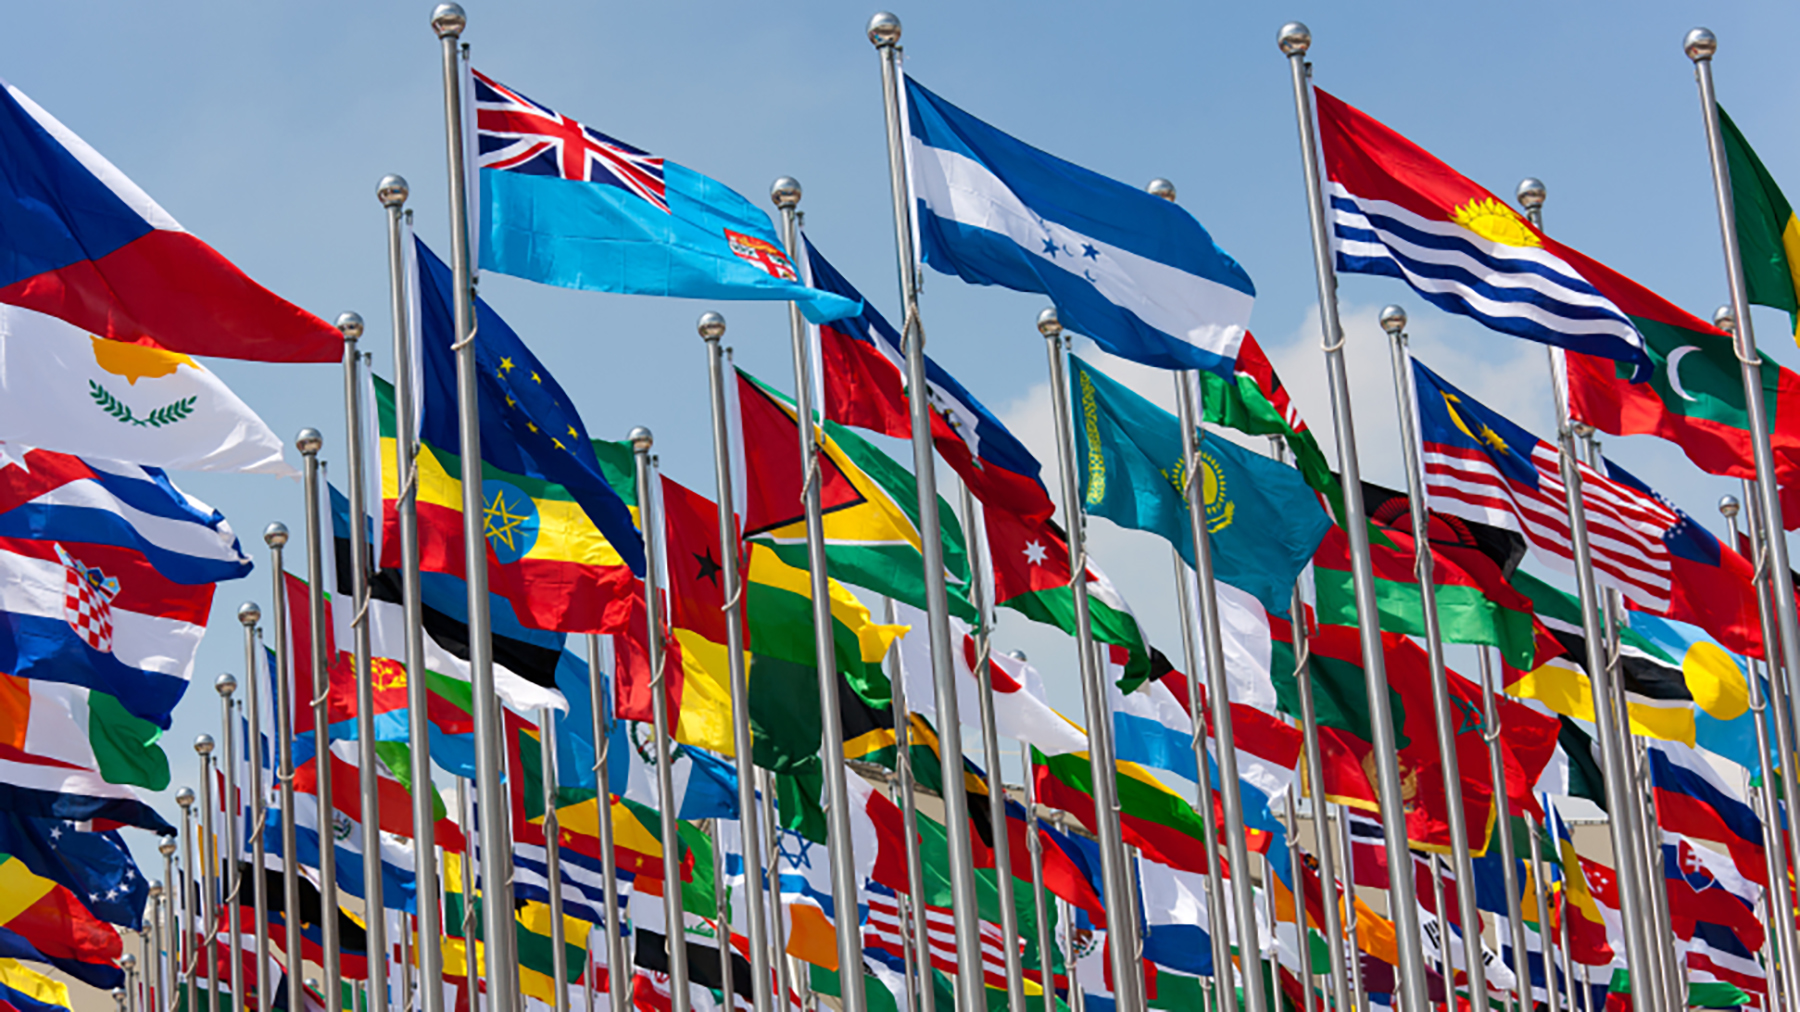 national flags from around the world. iStock photo